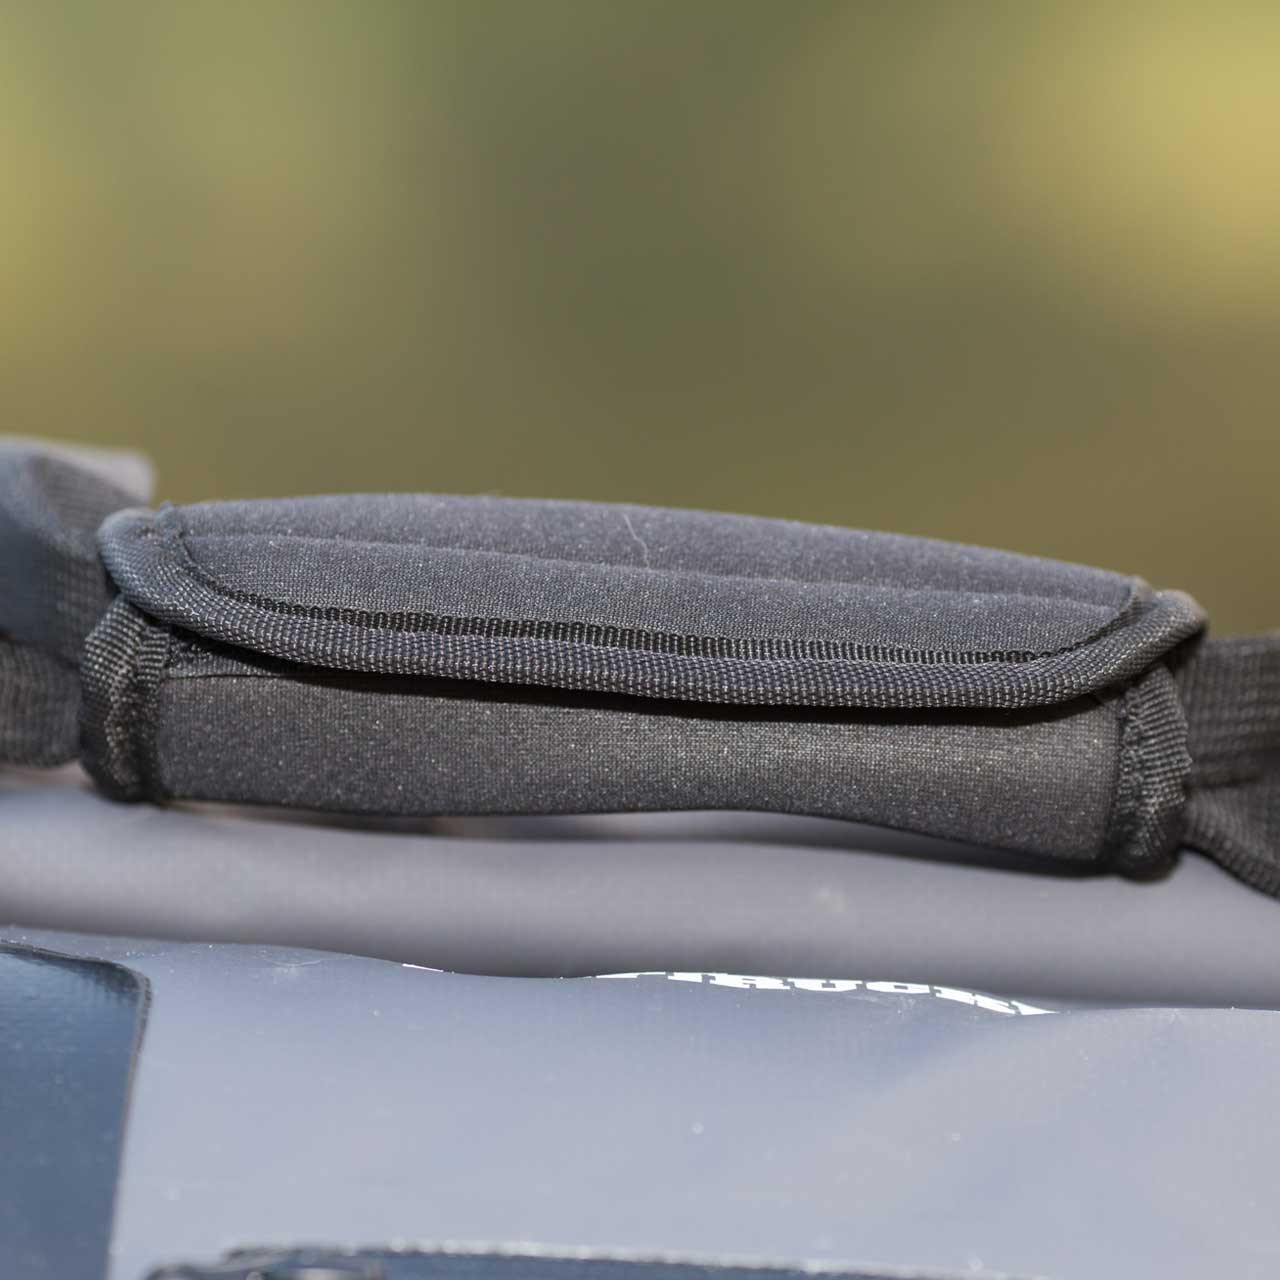 Close up of the soft grip bag handle